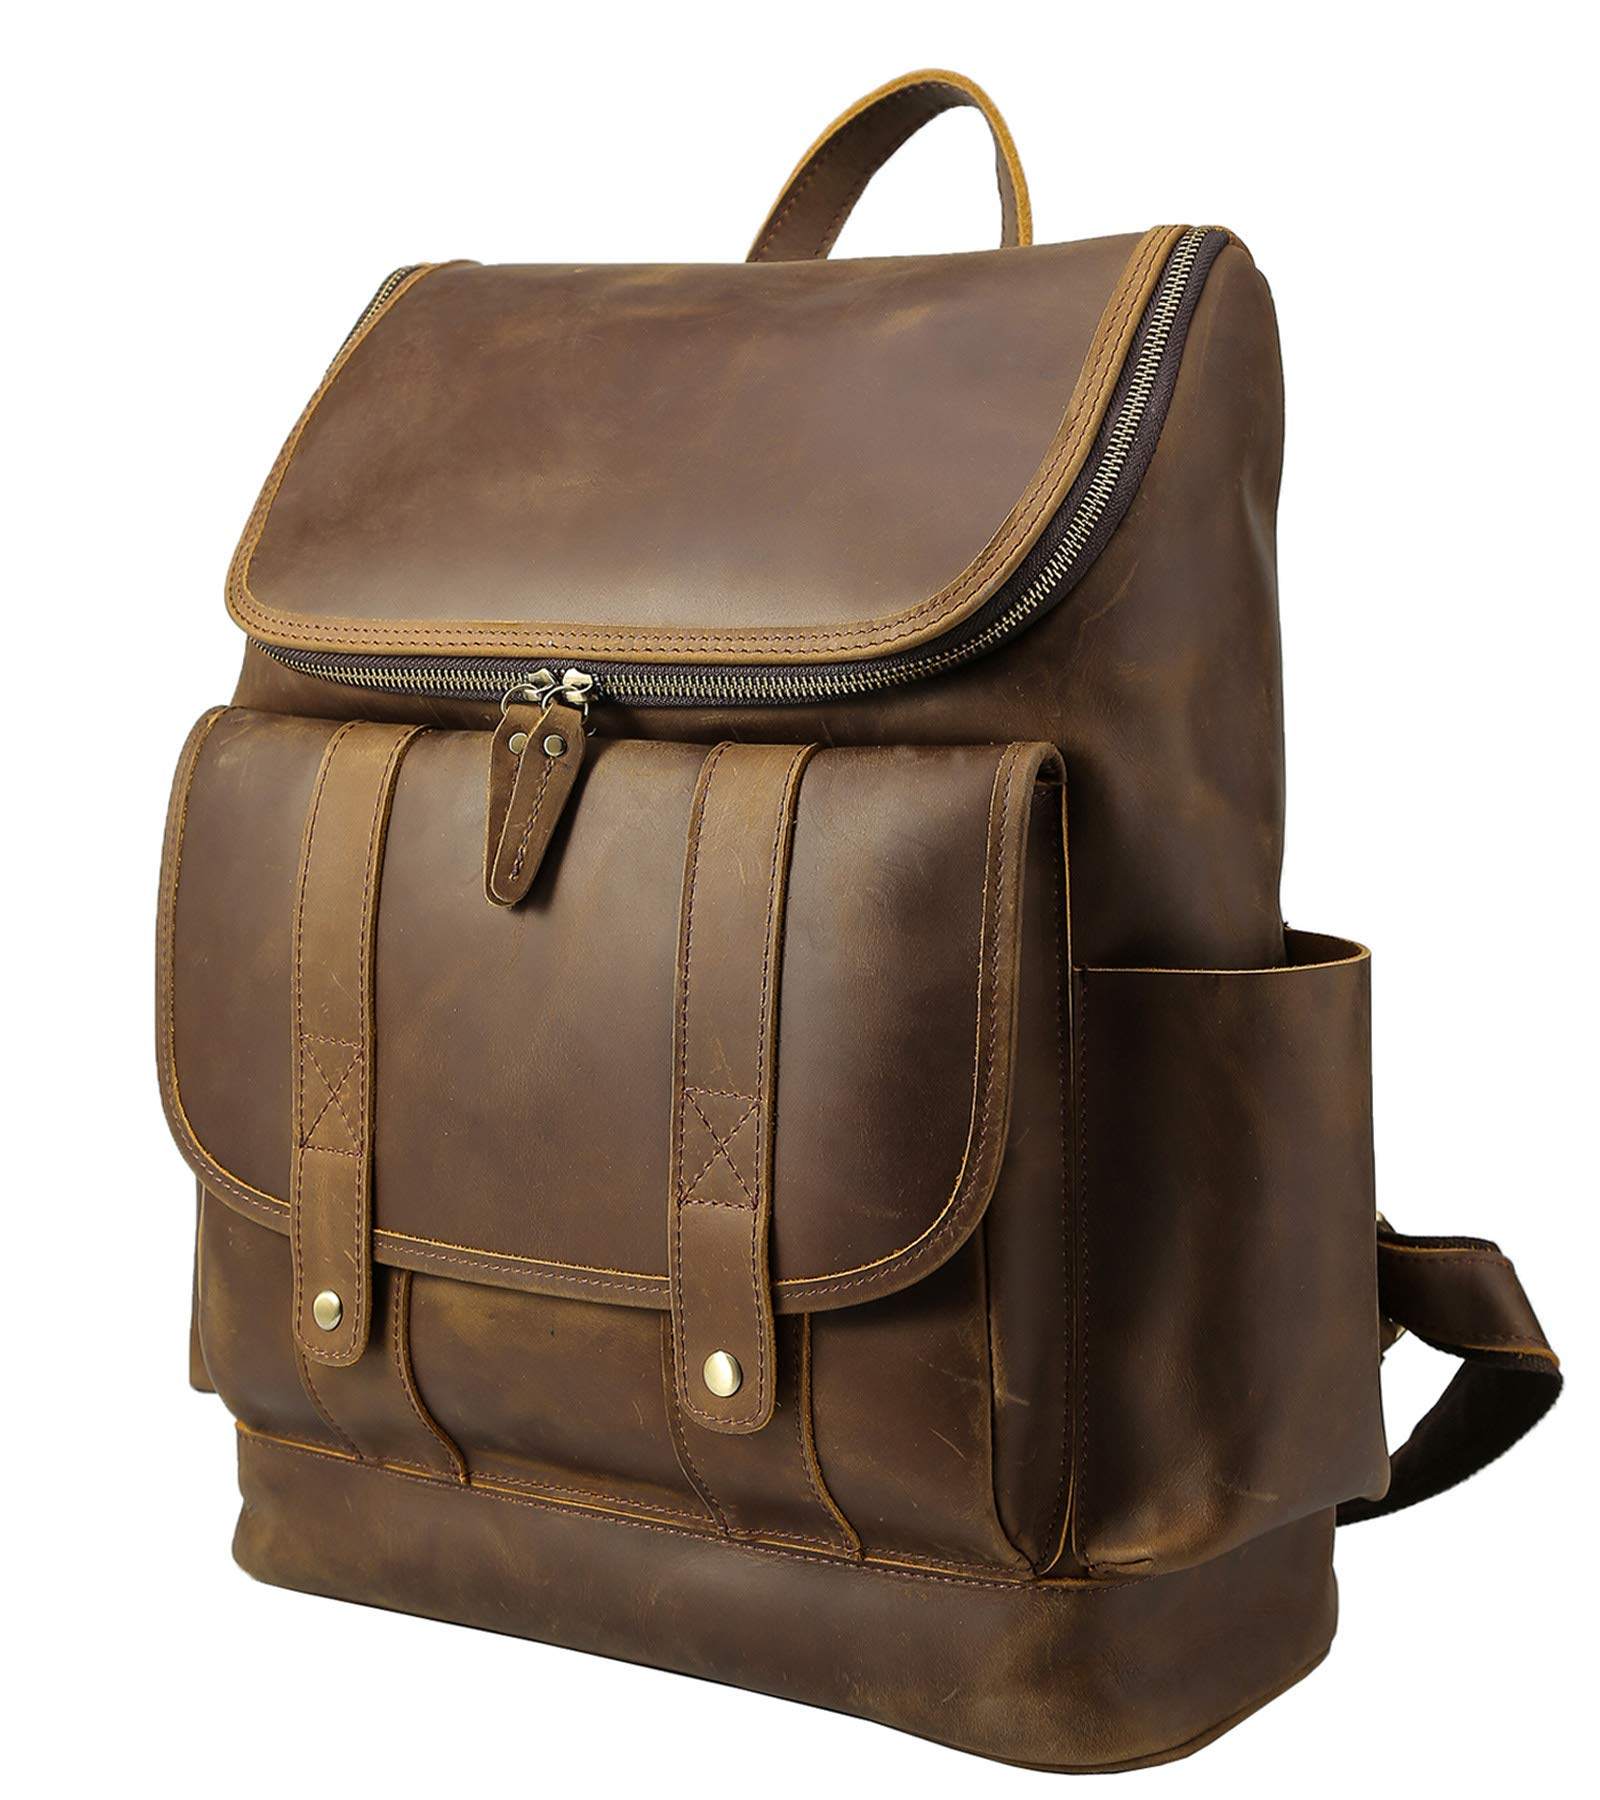 Texbo Vintage Full Grain Cowhide Leather 15.6 Inch Laptop Backpack Briefcase Shoulder Travel School Bag